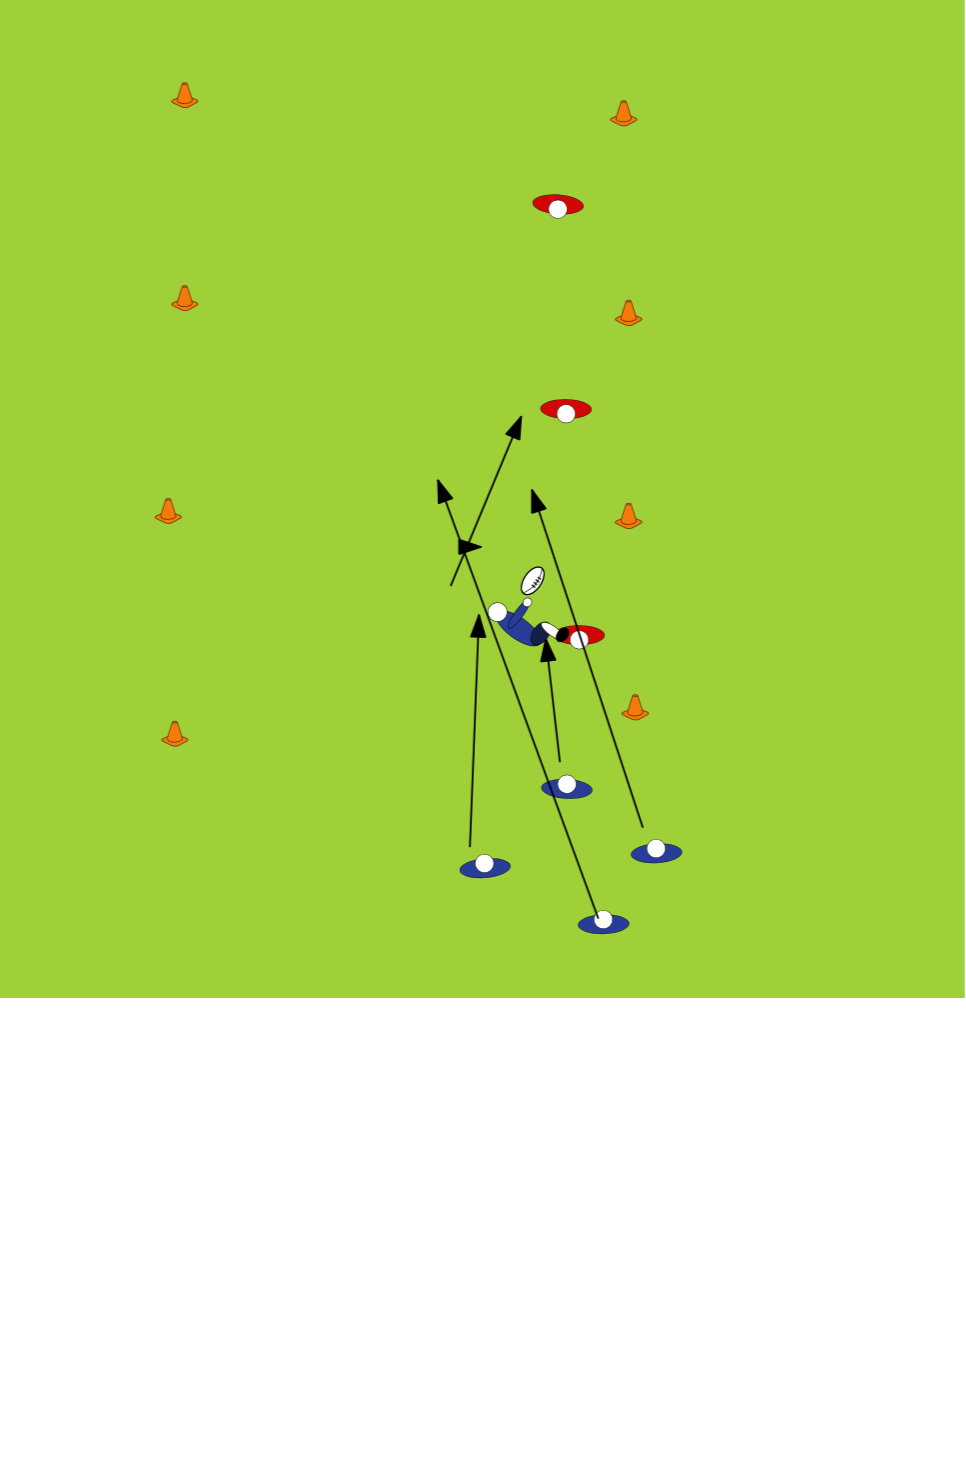 test 5 offloadsOff LoadsRugby Drills Coaching